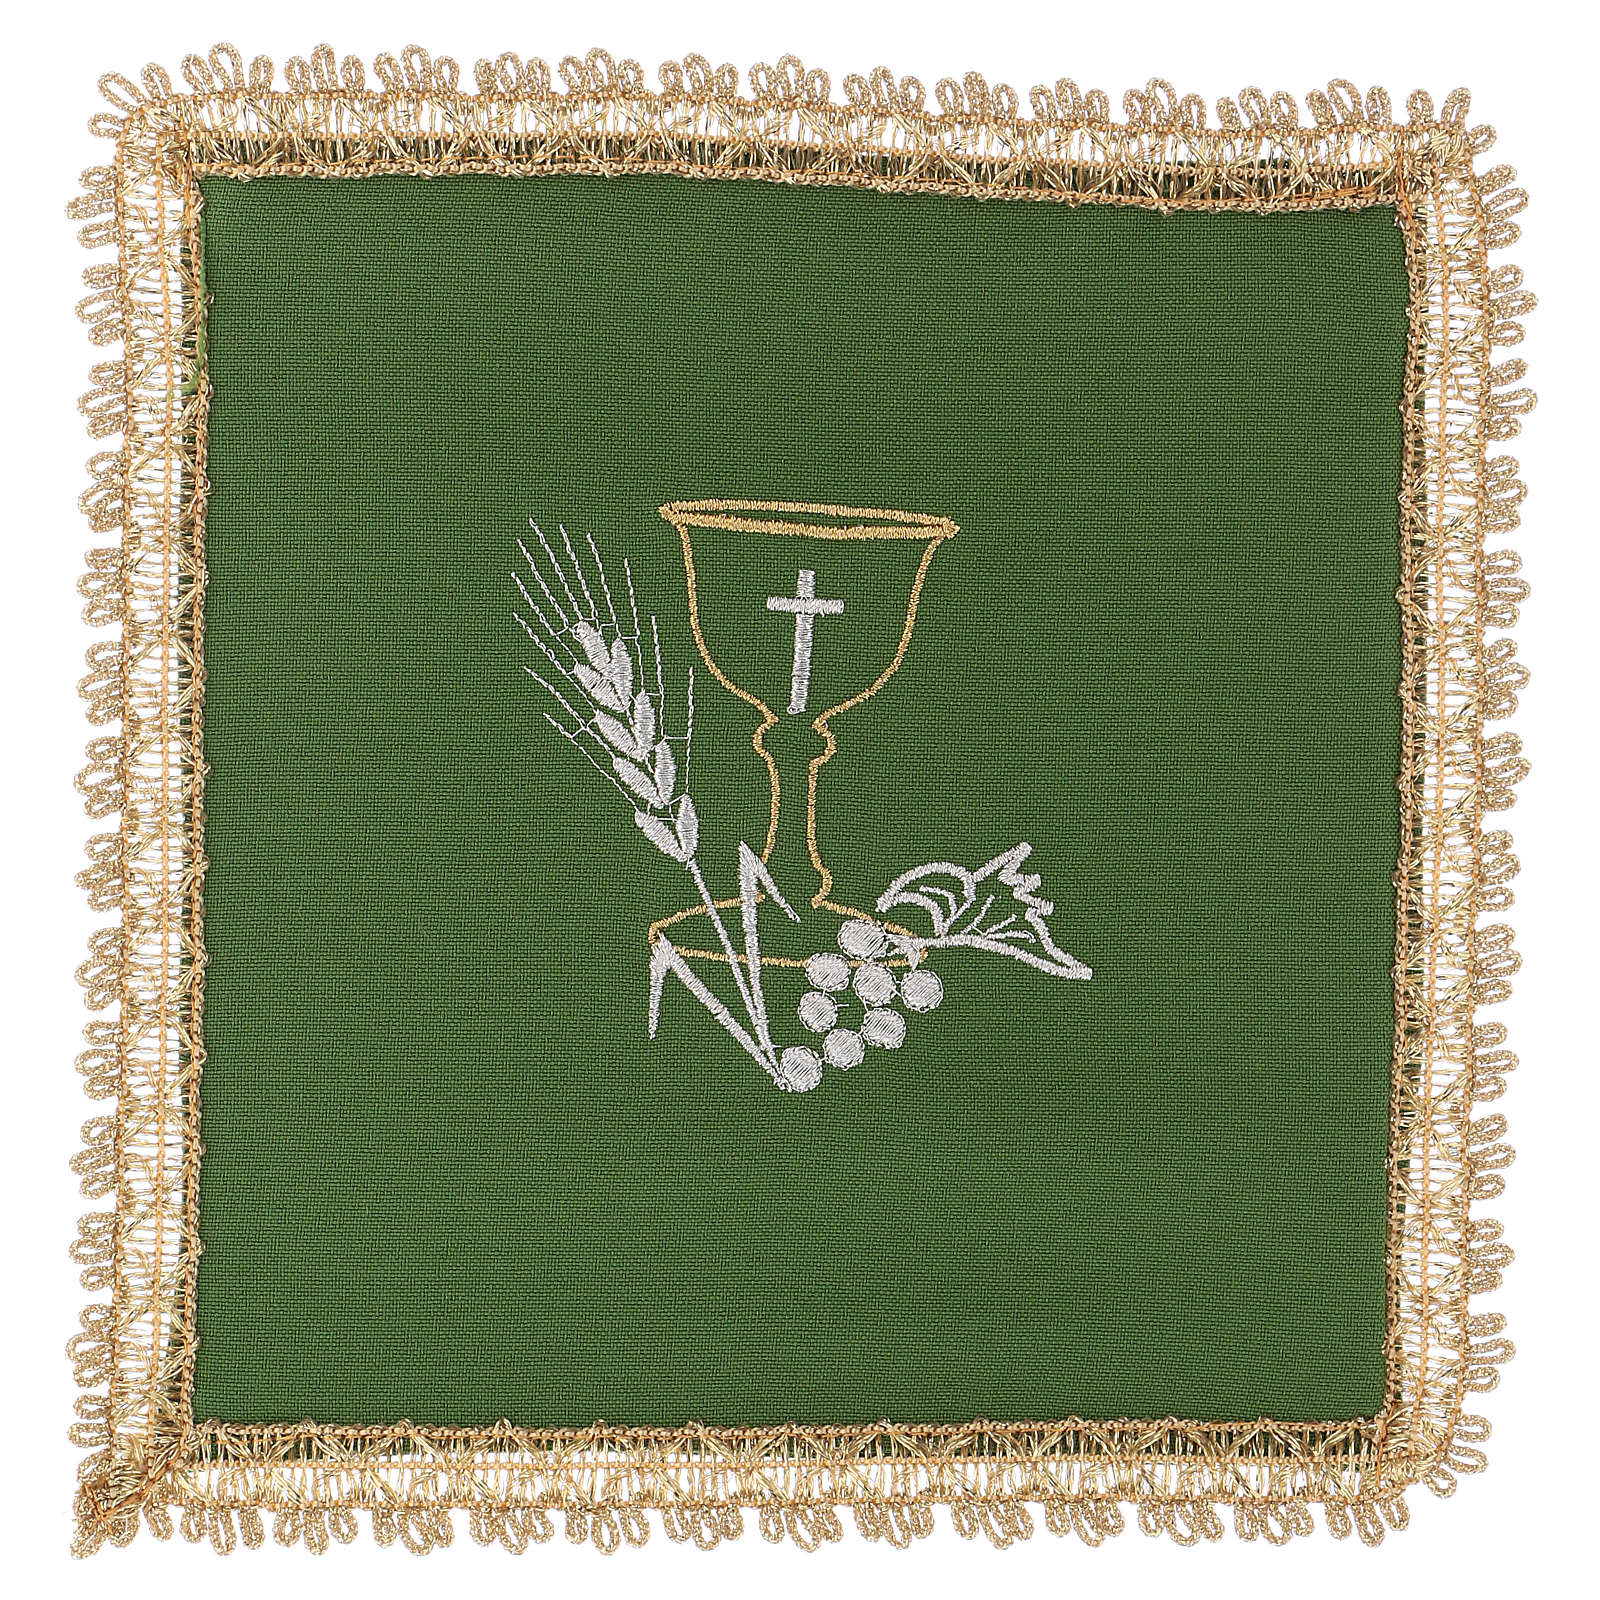 Chalice Veil (Pall) with Chalice decoration and Removeable Insert 4